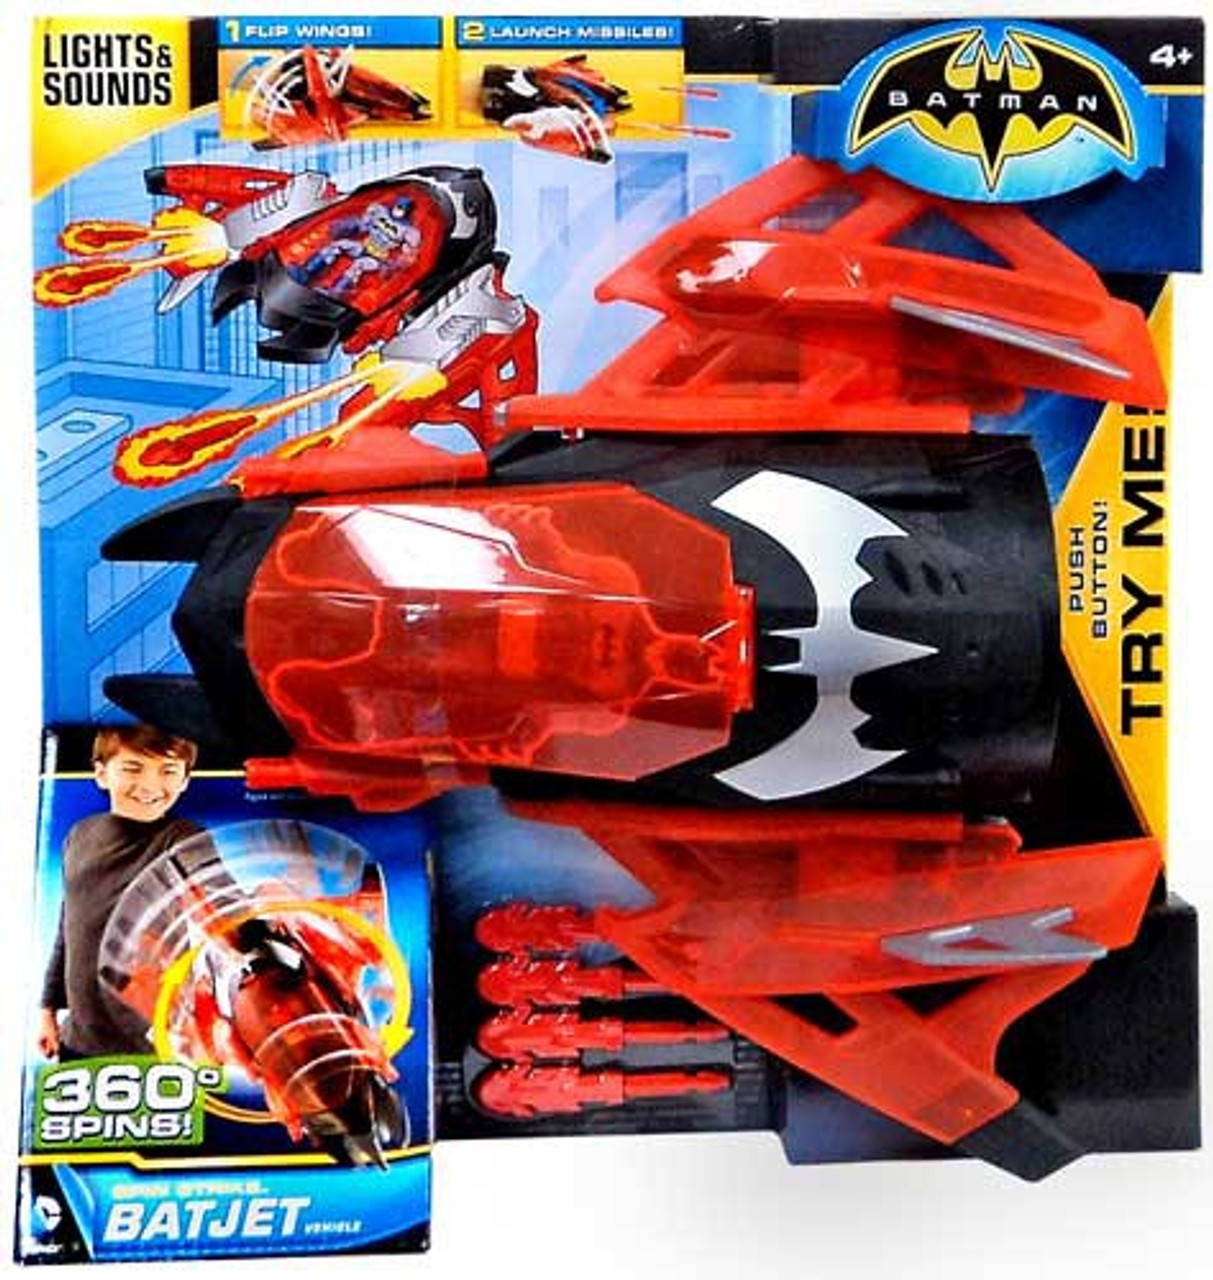 Batman Spin Strike Batjet Vehicle